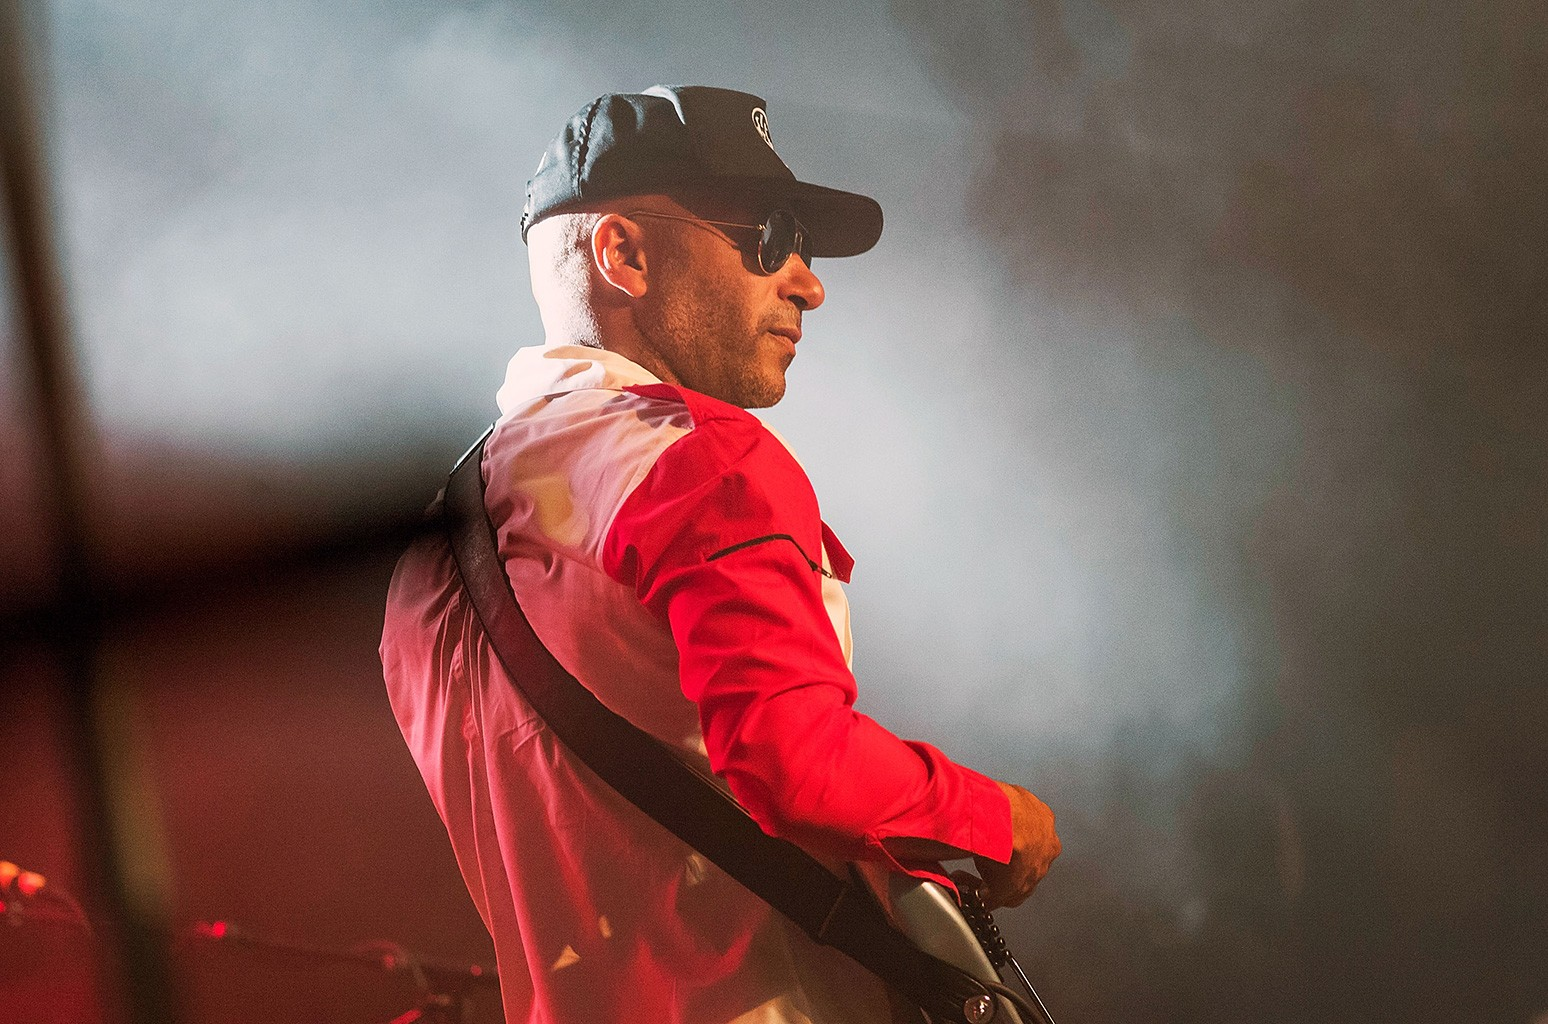 Tom Morello performs on stage at Teragram Ballroom during the Anti-Inaugural Ball on Jan. 20, 2017 in Los Angeles.